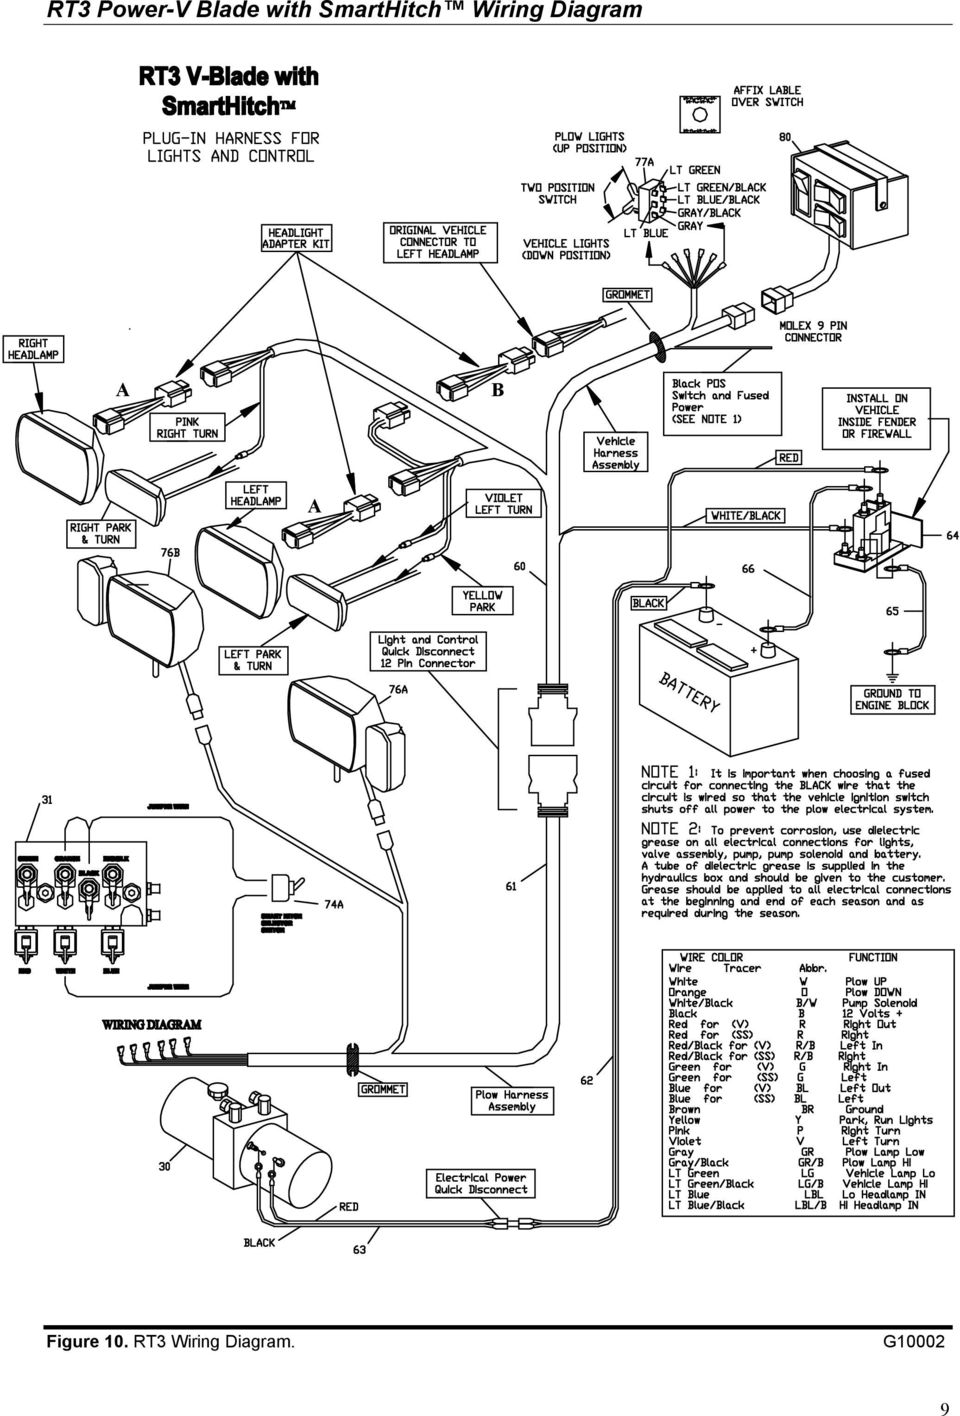 rt3 power v blade snowplow assembly installation procedure pdf rh docplayer net